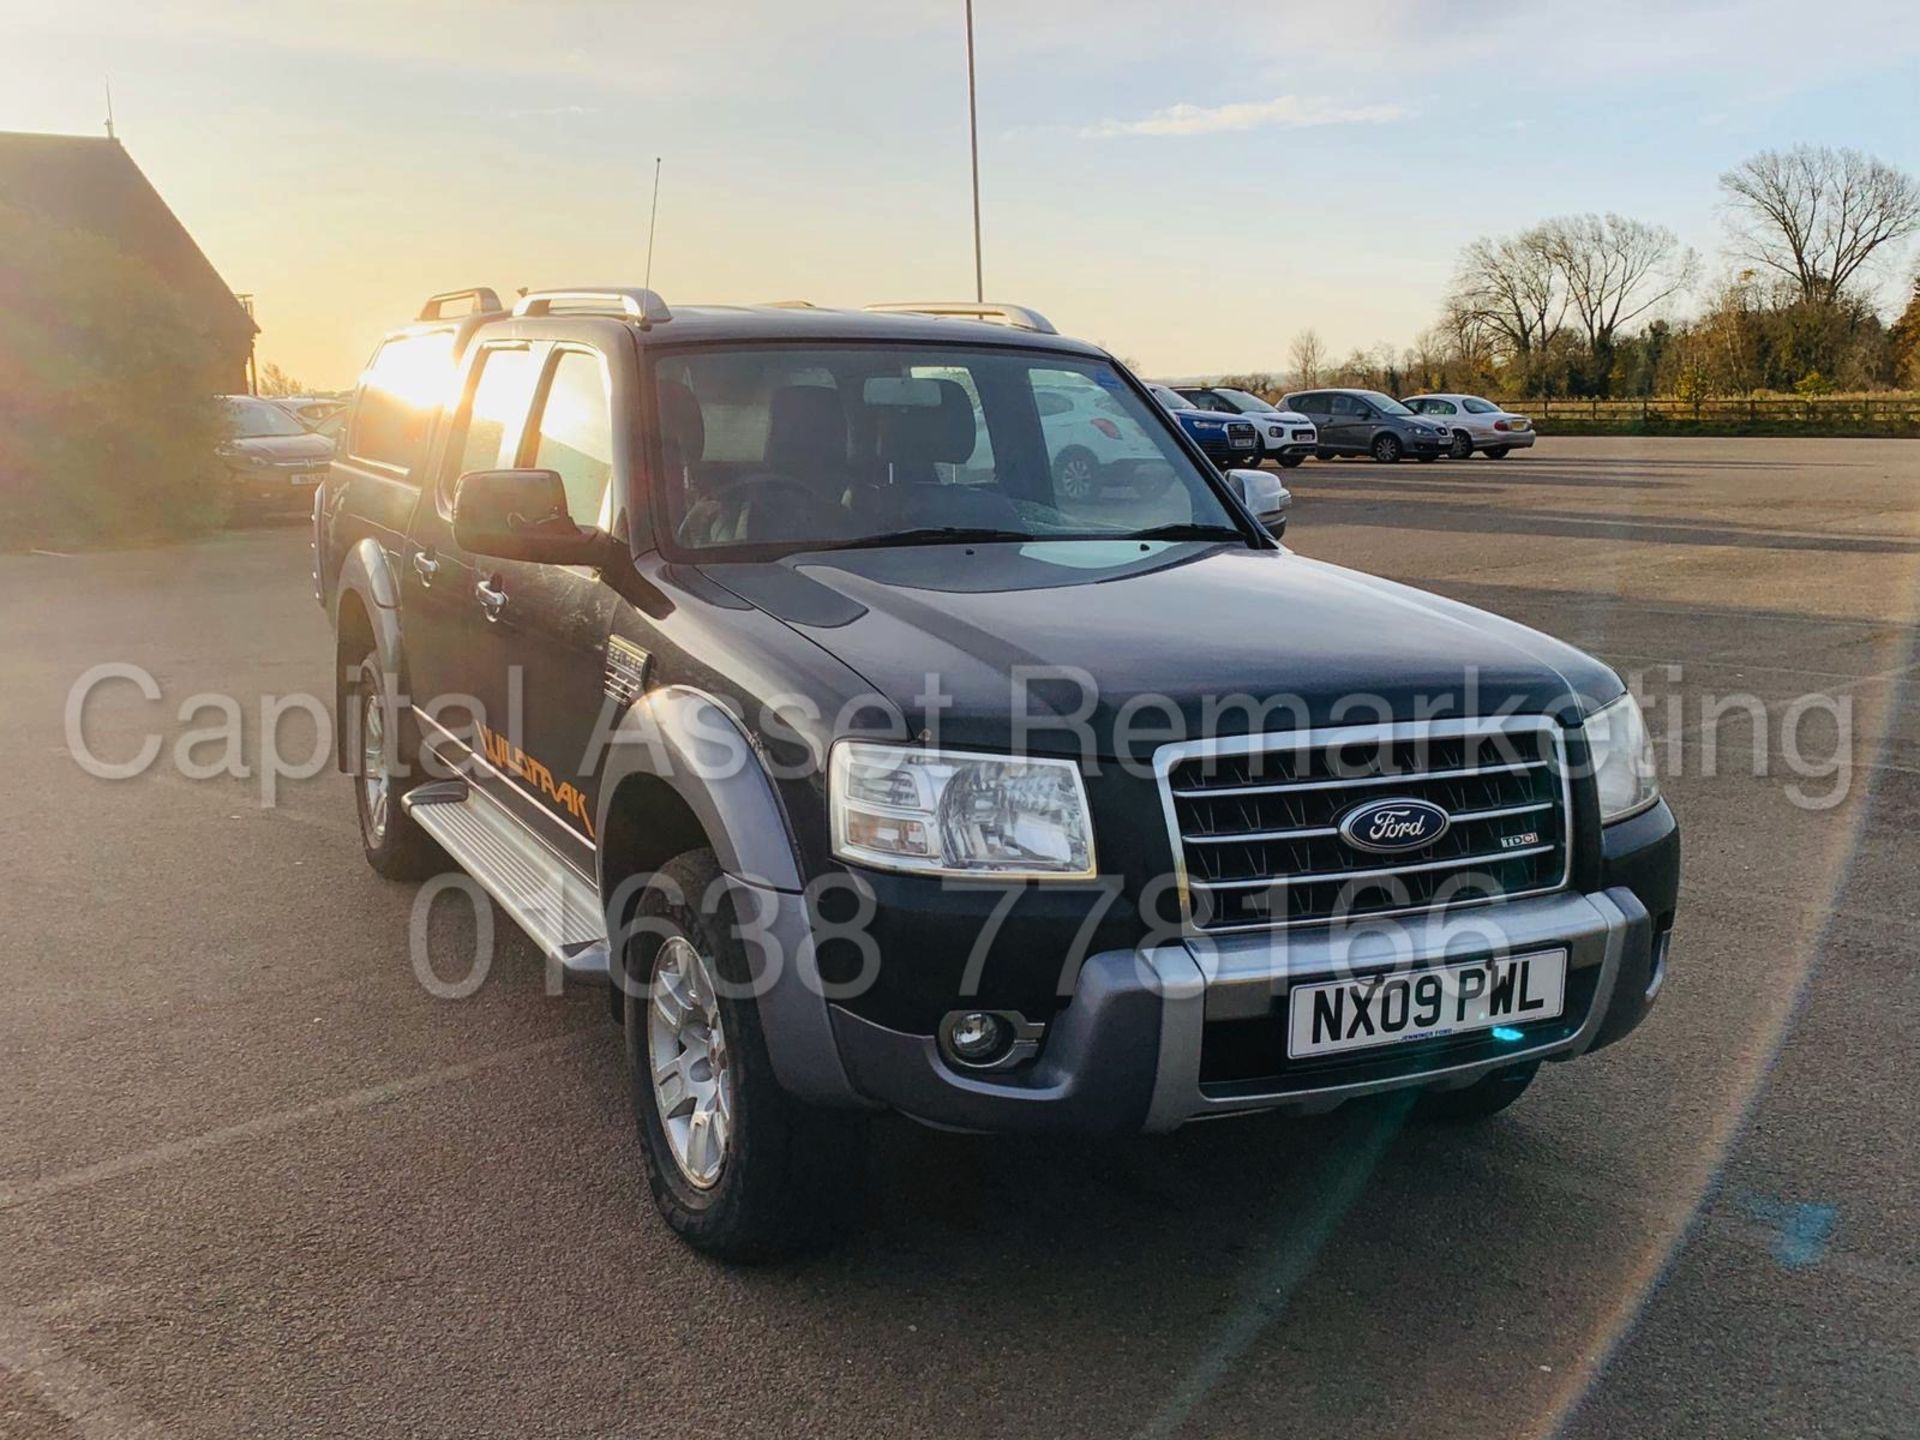 Lot 9 - FORD RANGER *WILDTRAK* DOUBLE CAB PICK-UP *4X4* (2009) '3.0 TDCI - 156 BHP* (FULLY LOADED)